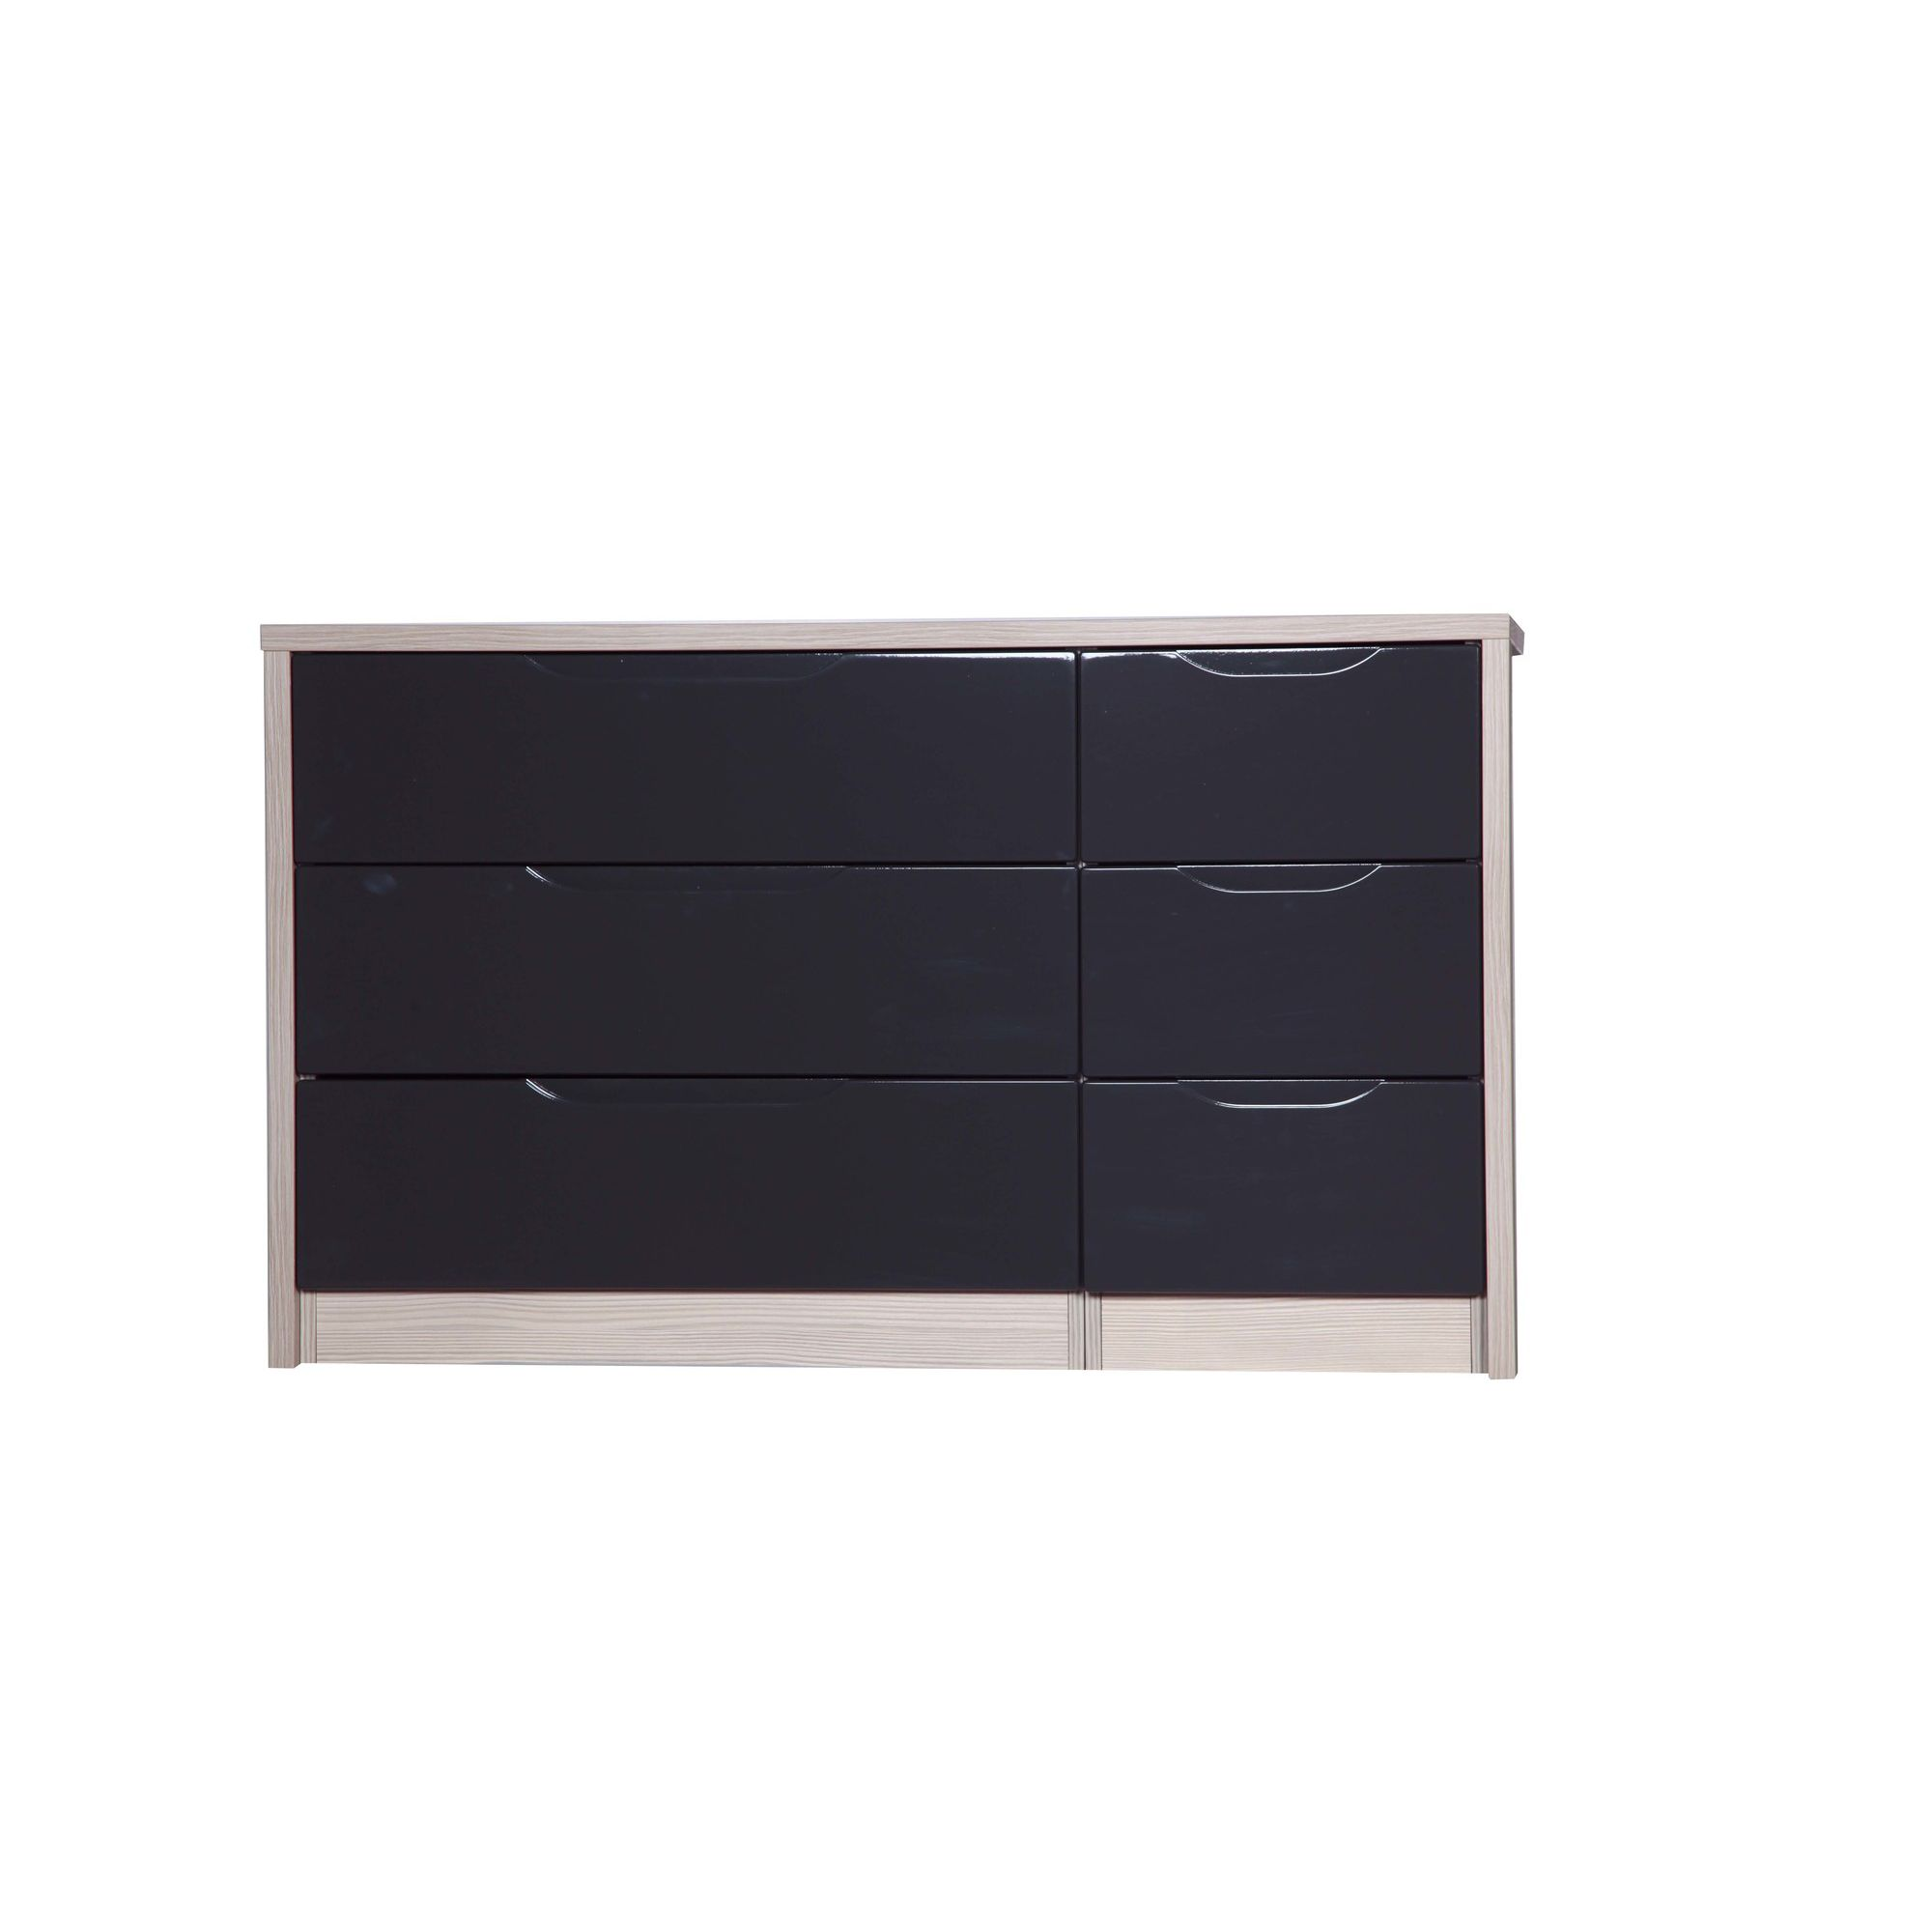 Alto Furniture Avola 6 Drawer Double Chest - White Avola Carcass With Grey Gloss at Tescos Direct